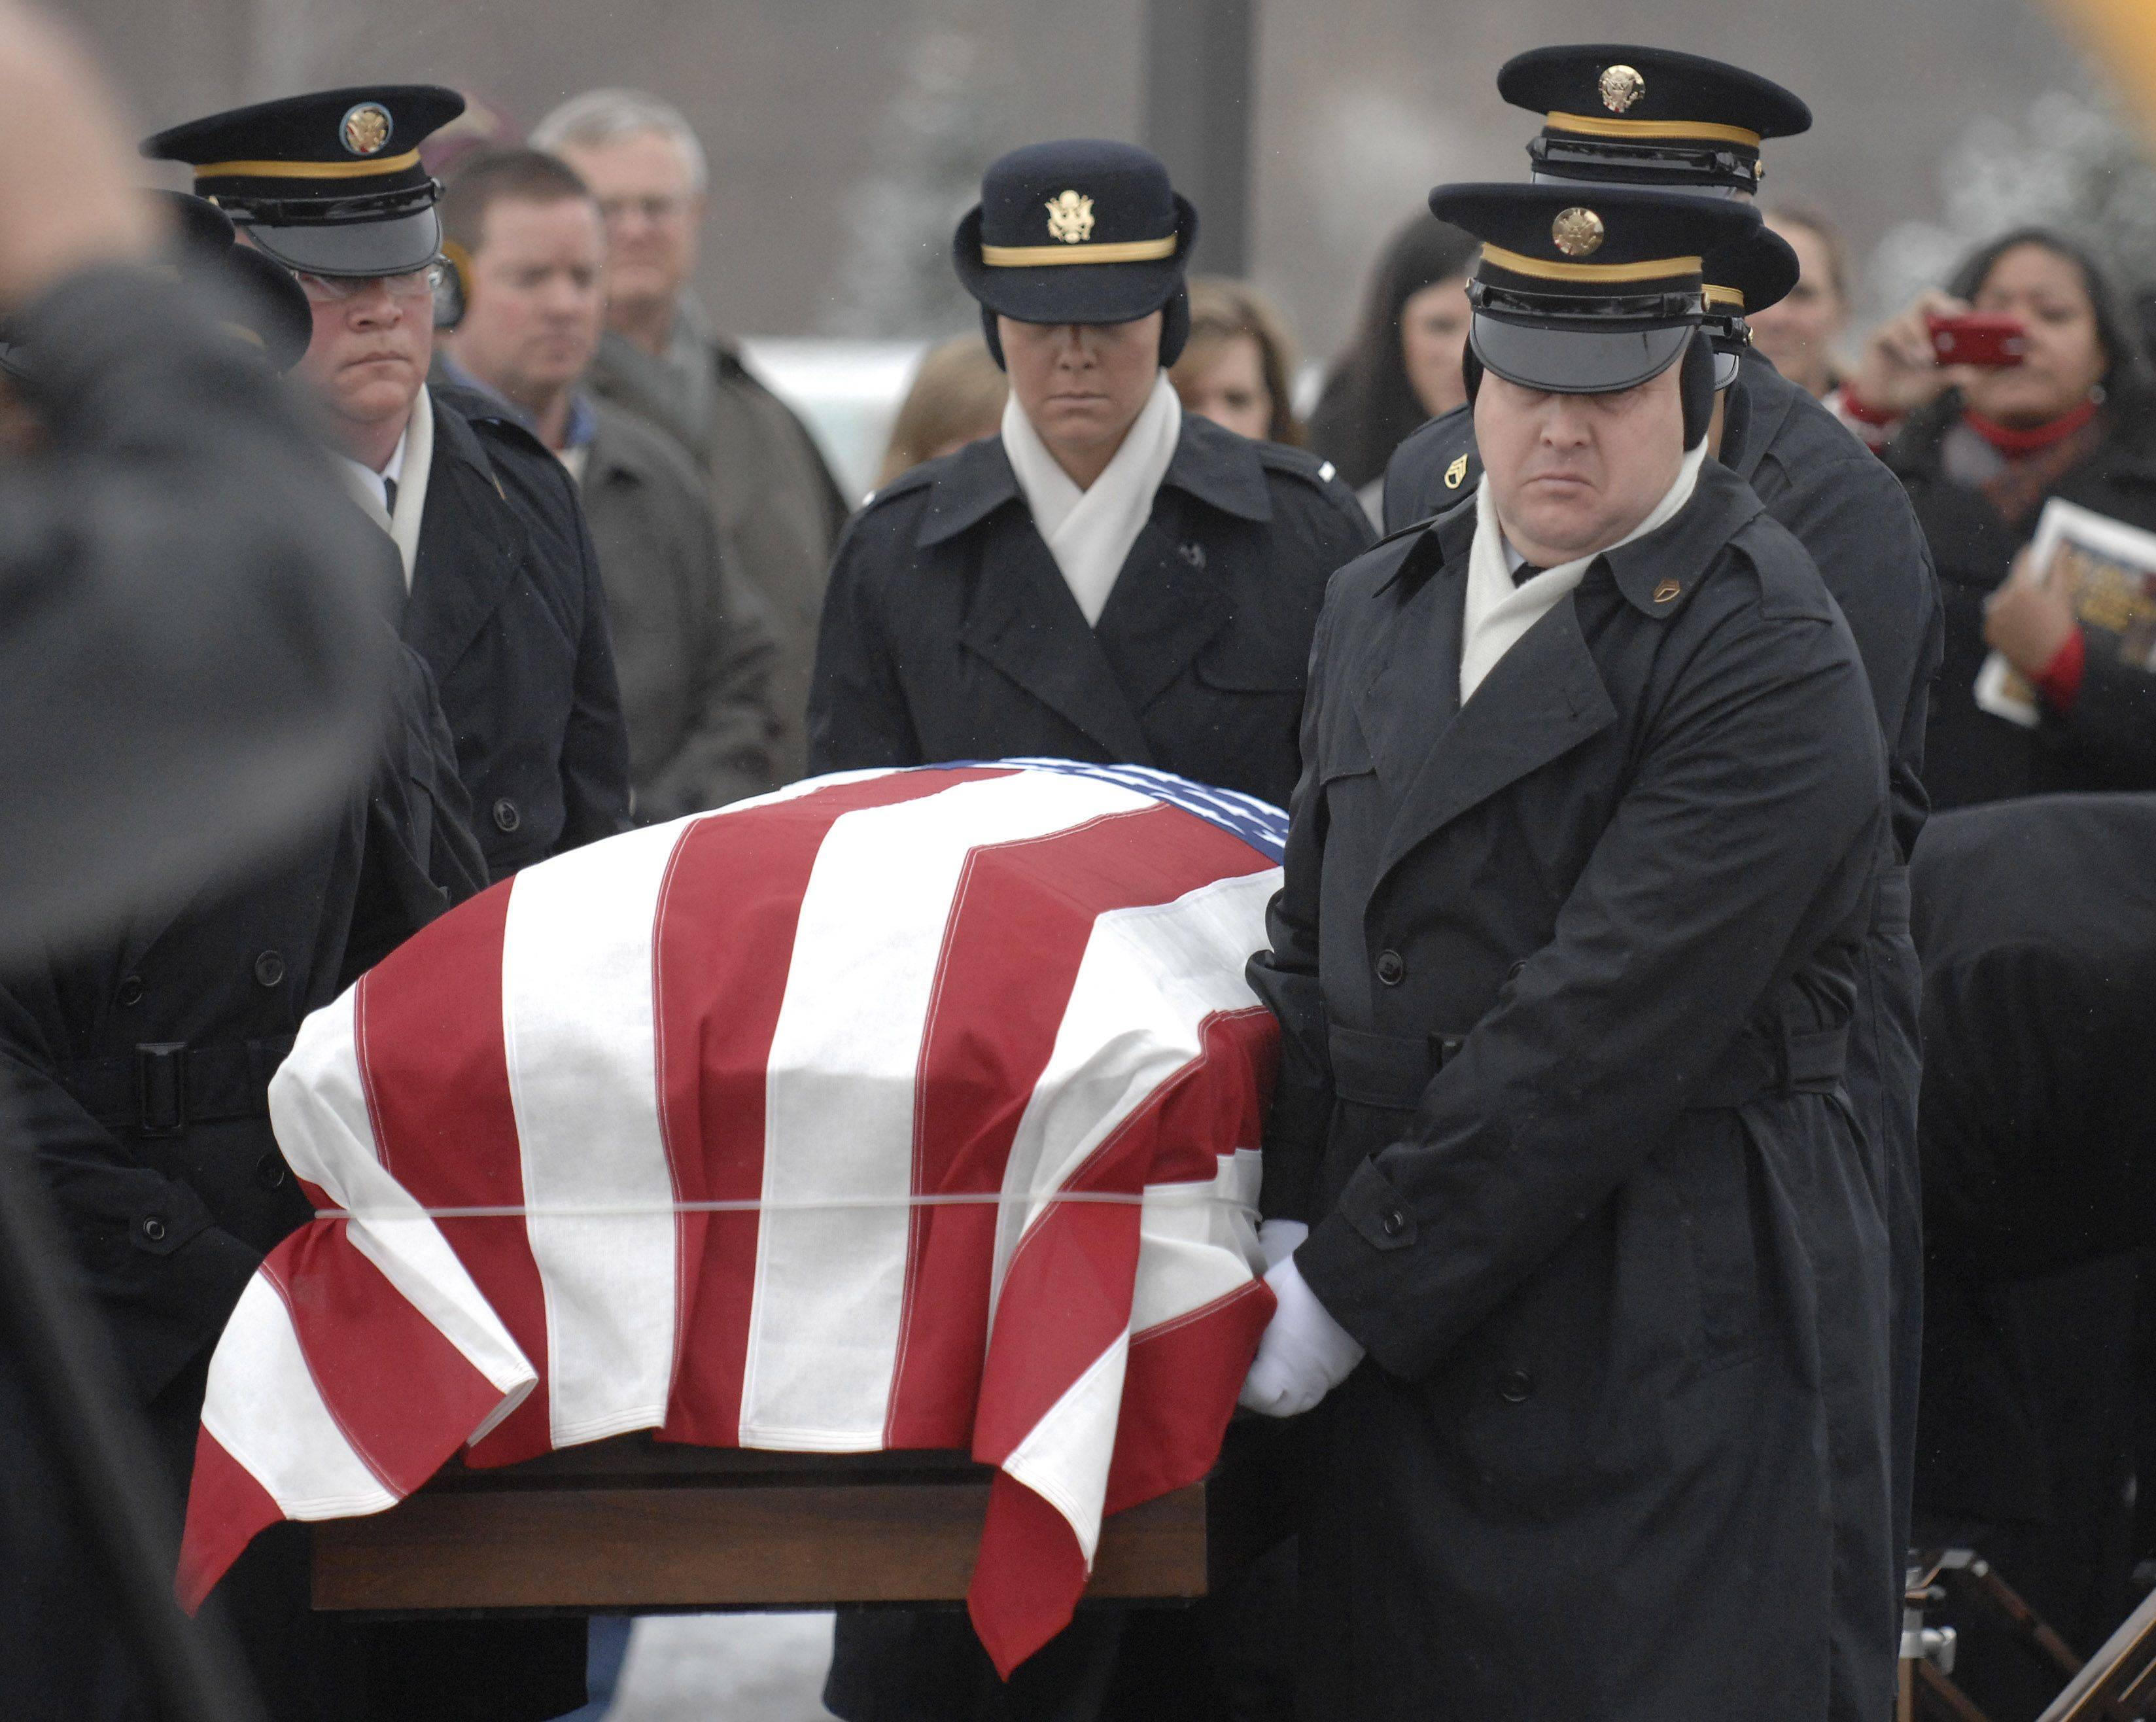 Staff Sergeant Jeffrey Hawley, left, leads the Indiana National Honor Guard Ceremonial Unit while bringing the casket of Spc. Christopher A. Patterson outside for full military honors after his funeral at Immanuel Lutheran Church in Batavia on Saturday, January 21.